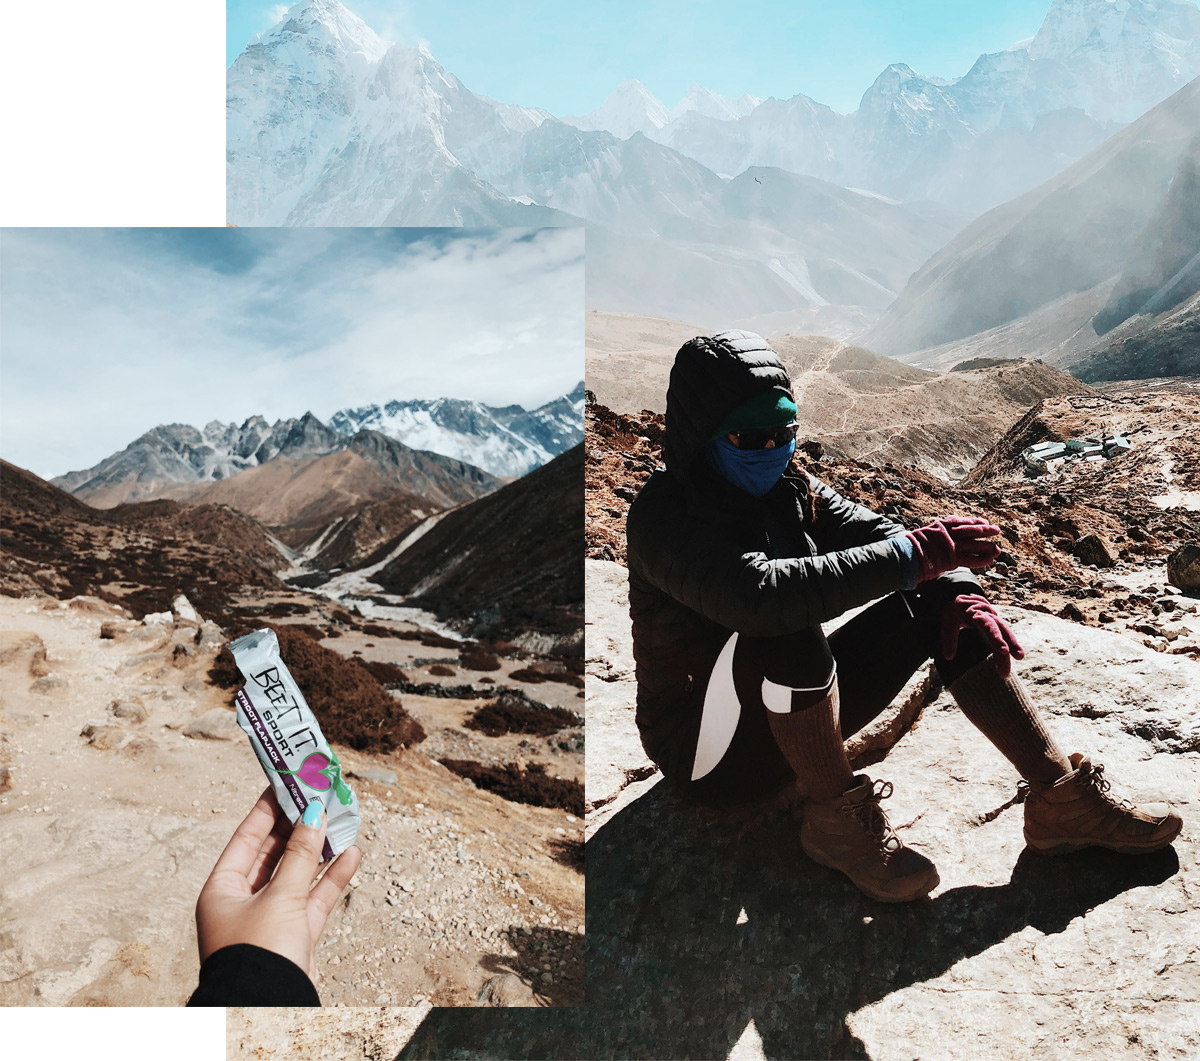 Things to bring for Everest Base Camp